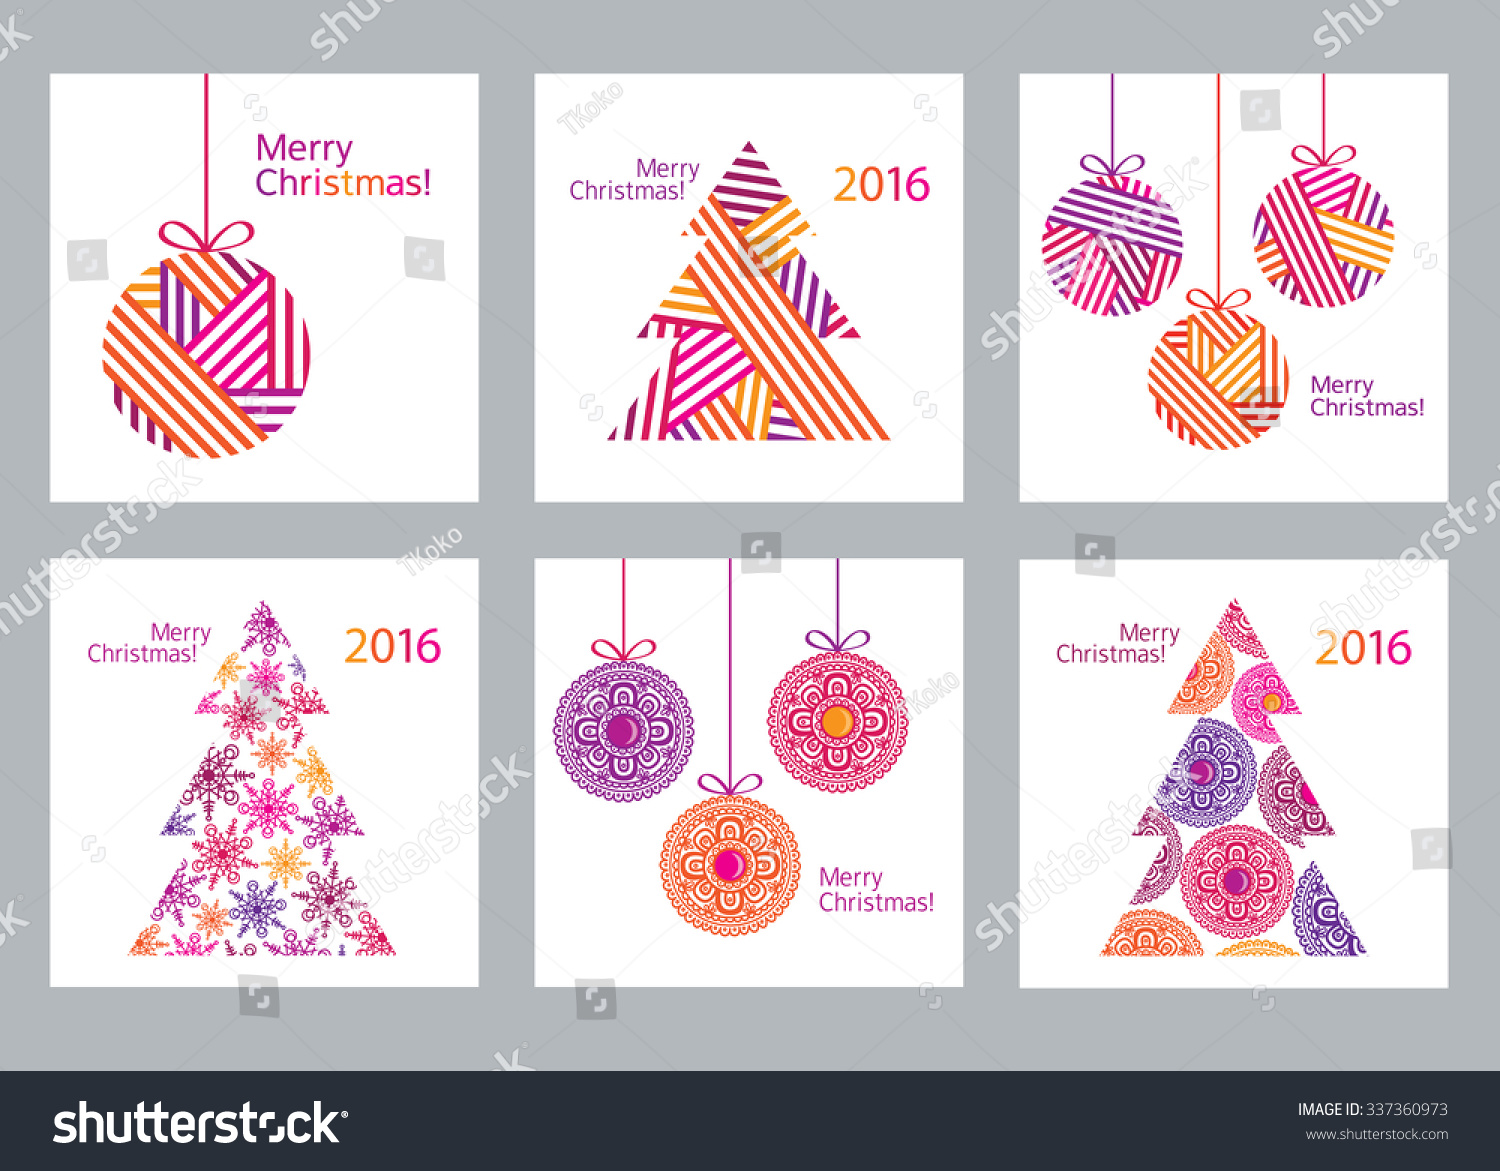 Happy New Year 2016 Merry Christmas Set of creative 6 Christmas cards Christmas Posters set Template for Greeting Congratulations Invitations Vector illustration